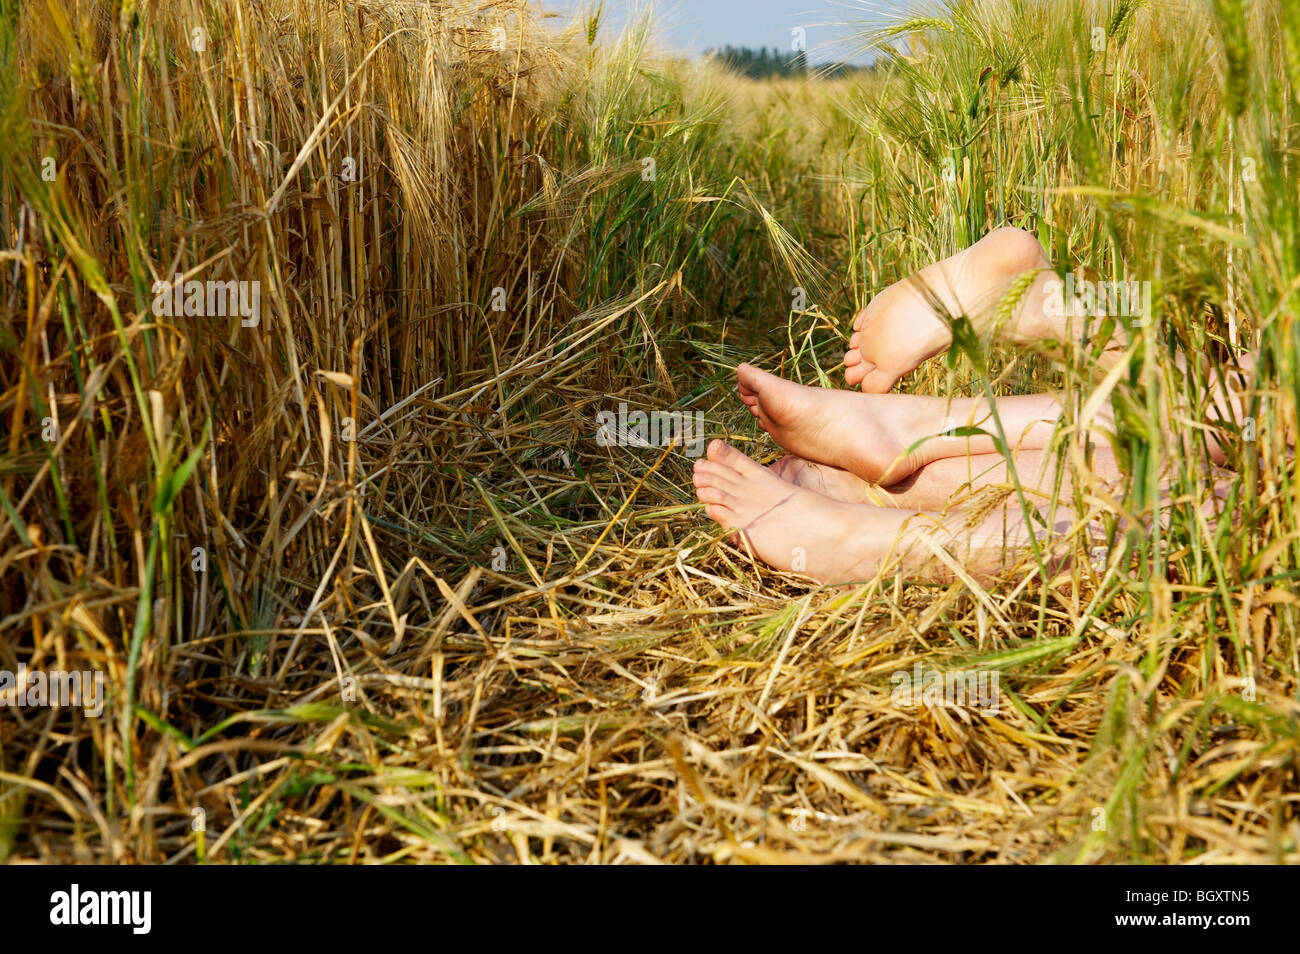 Feet sticking out from a wheat field - Stock Image